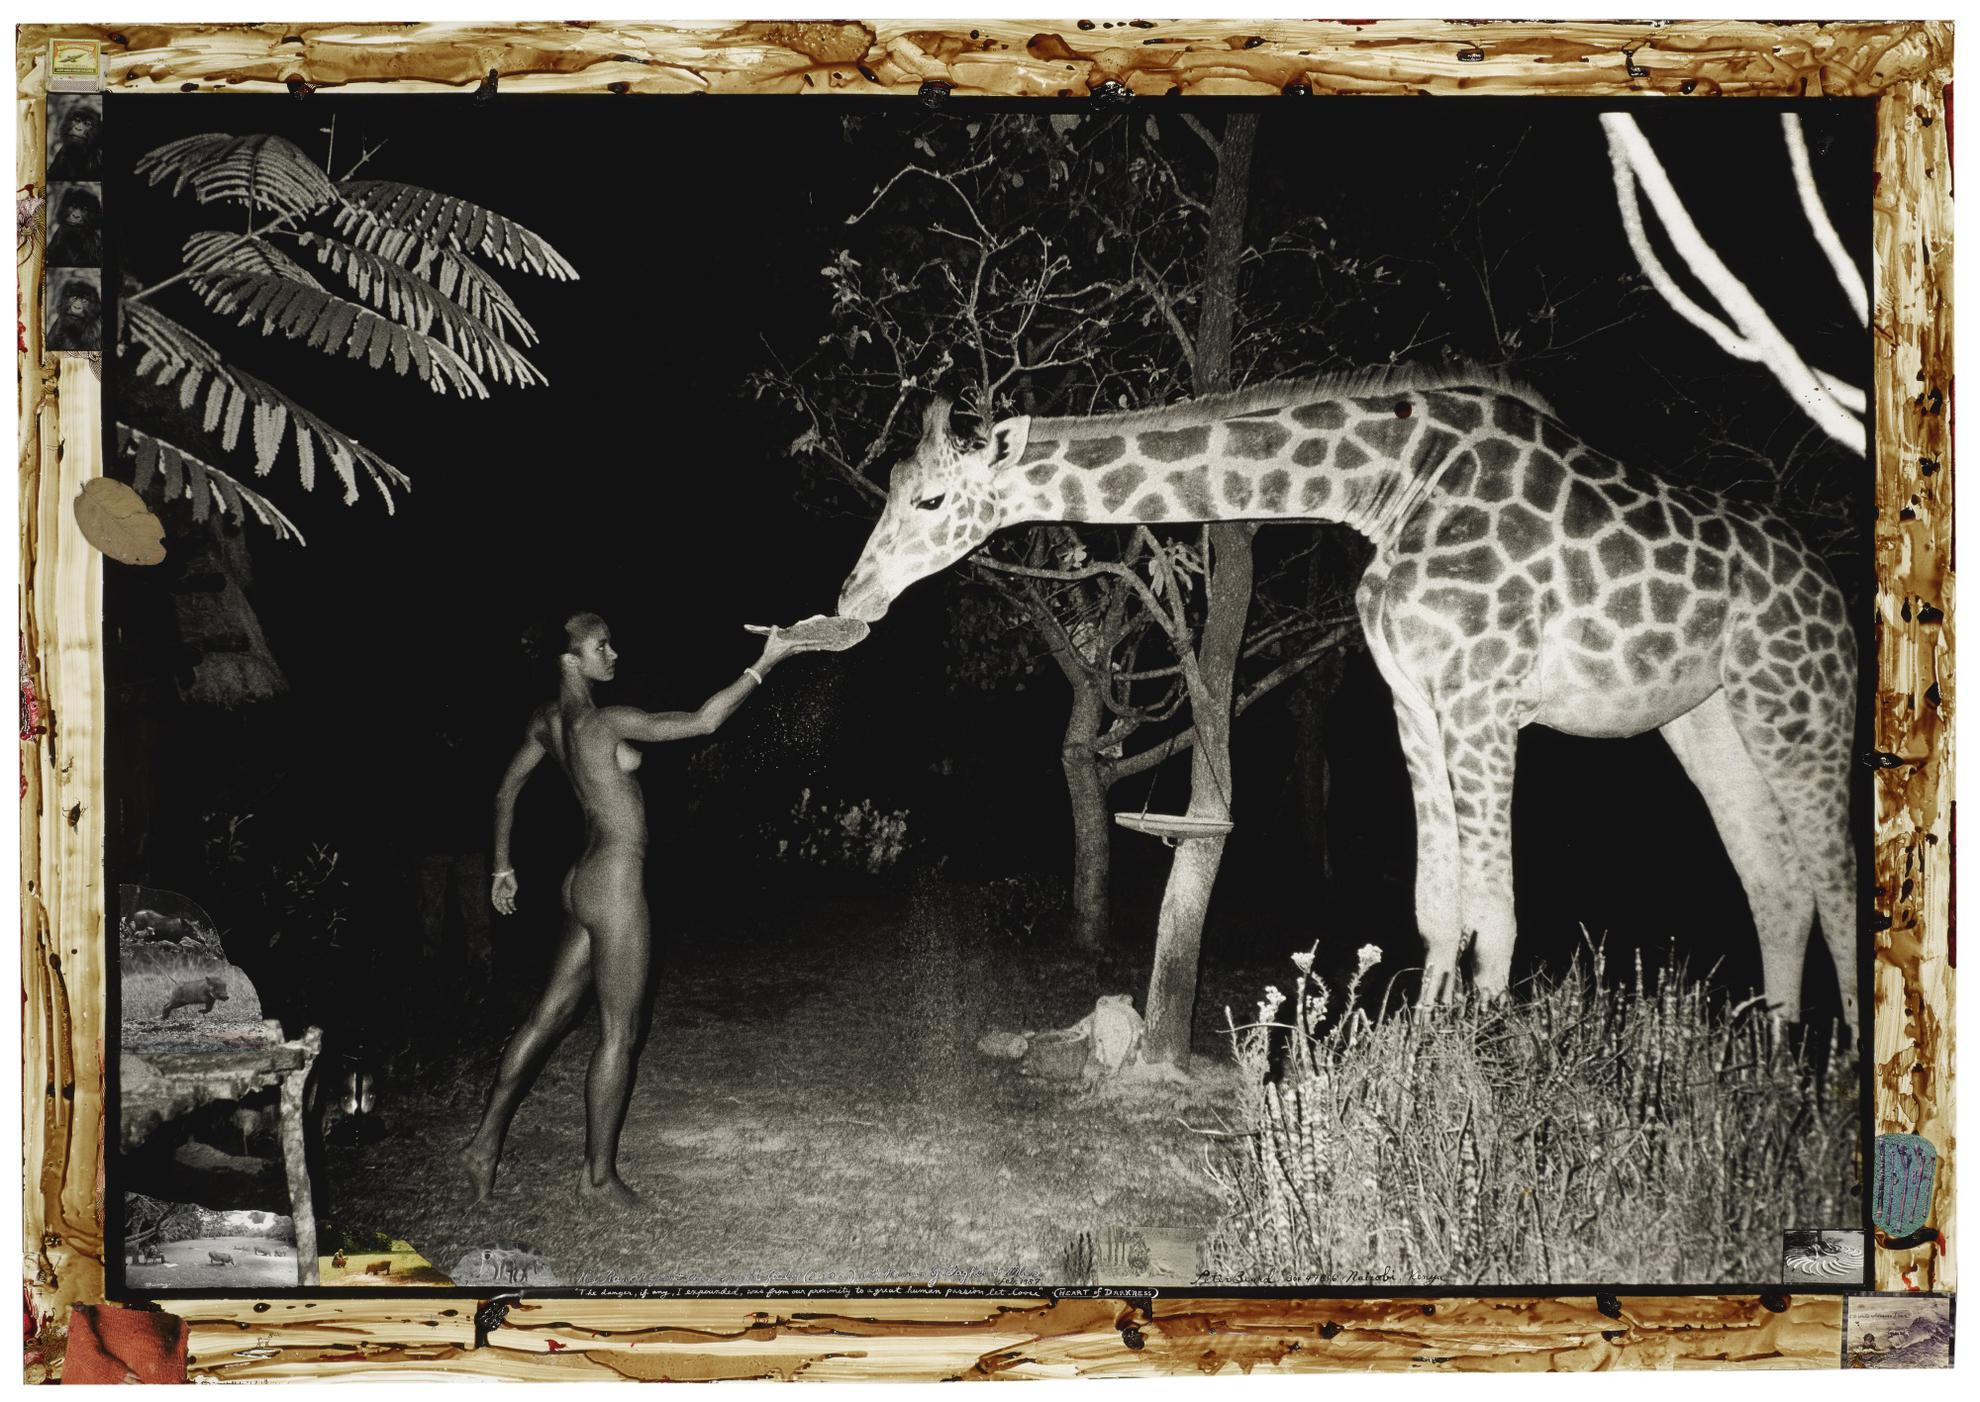 Peter Beard-Hog Ranch Front Lawn, Night Feeder (2:00 Am) With Maureen Gallagher & Mbuno, Feb. 1987-1987